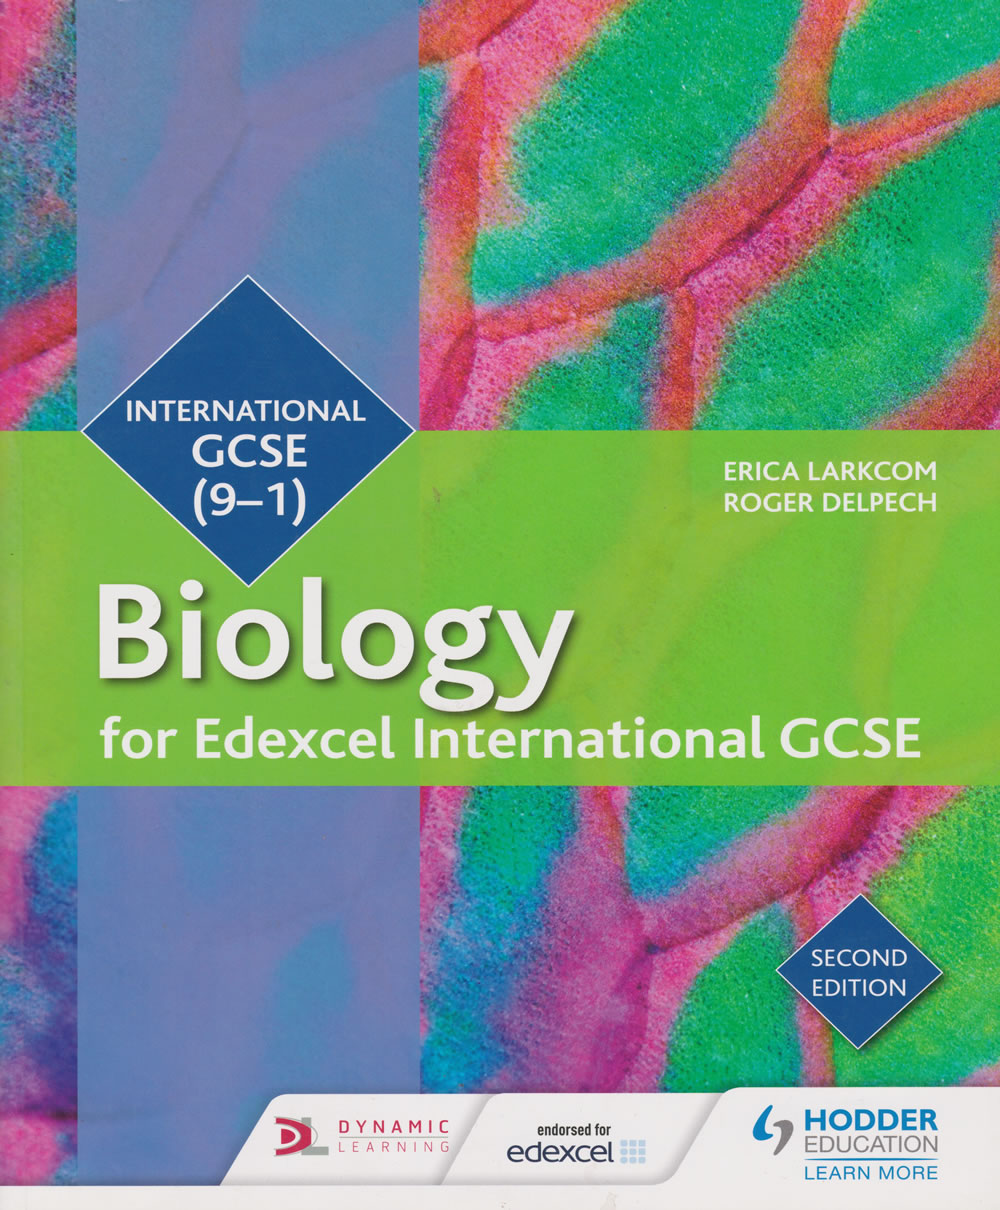 International GCSE (9-1) Biology for Edexcel Int G   Books, Stationery,  Computers, Laptops and more  Buy online and get free delivery on orders  above